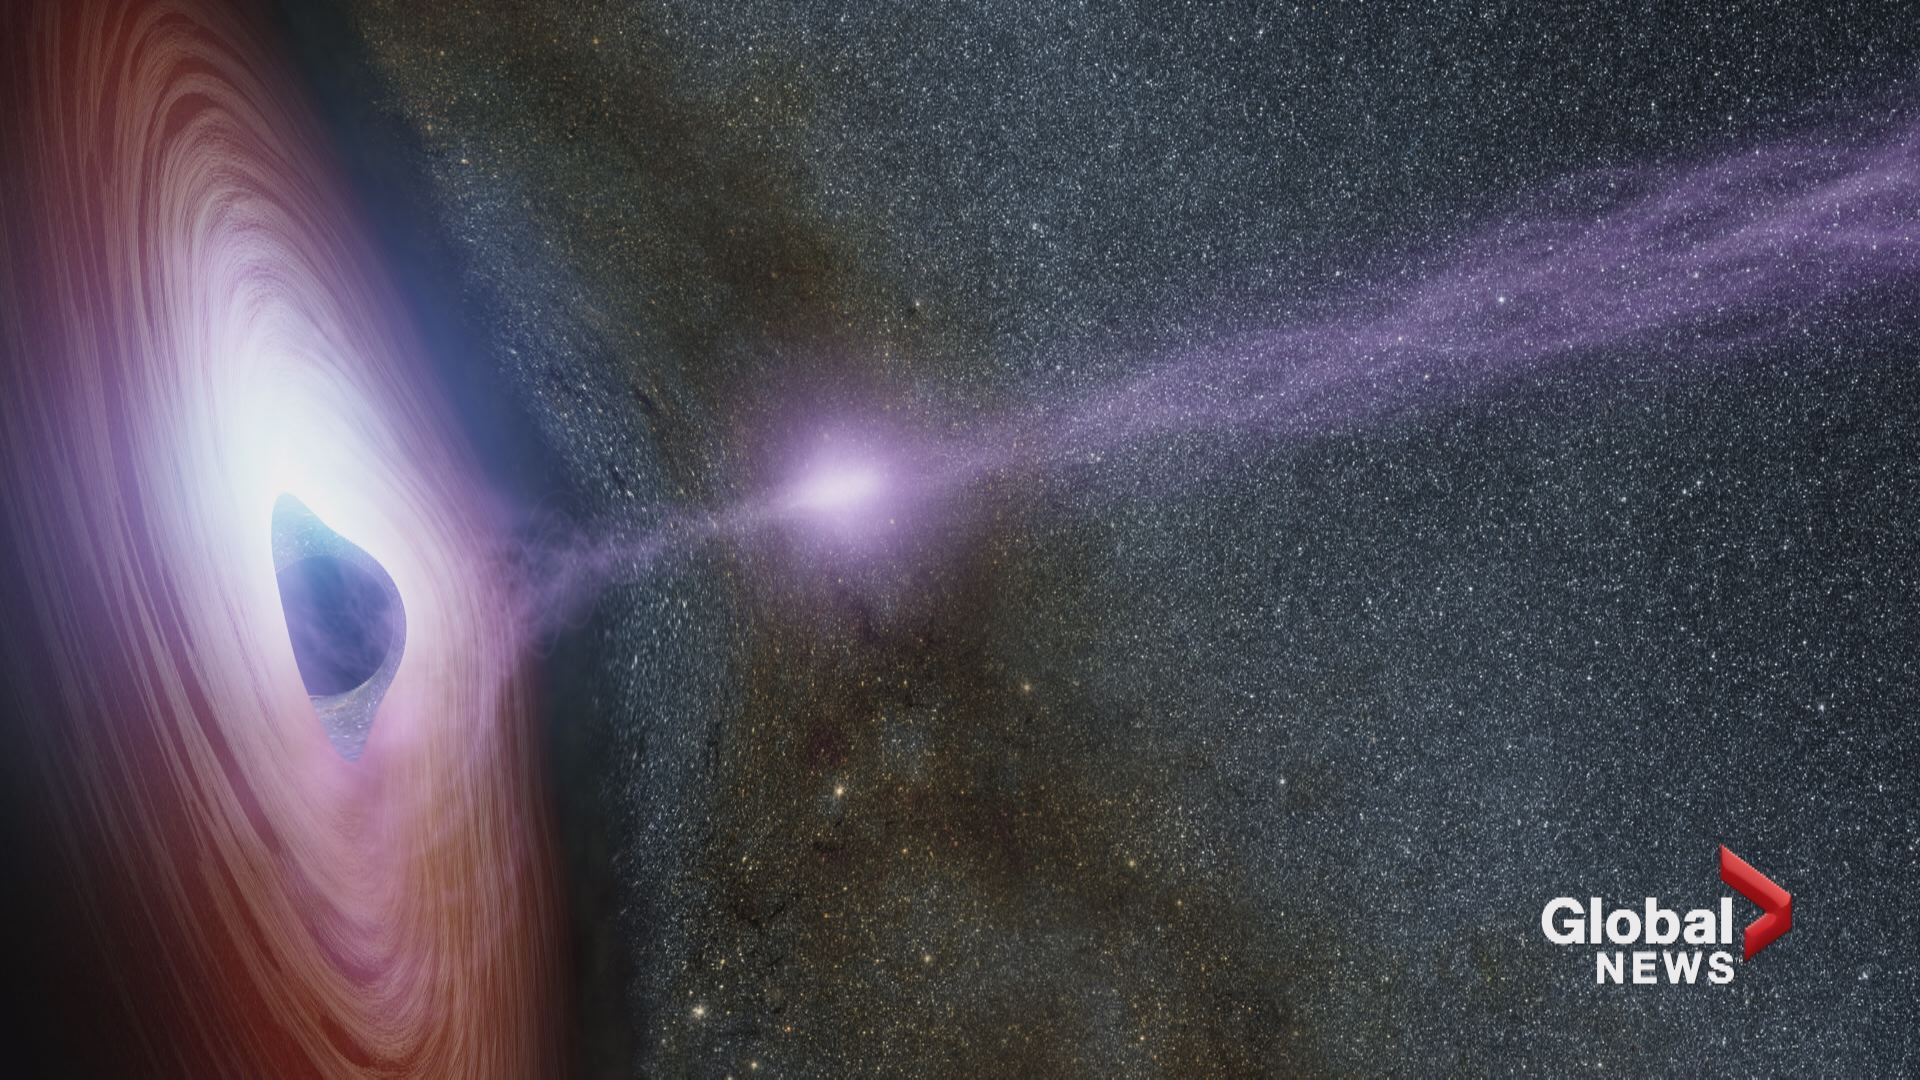 Scientists Share the First-Ever Photo of a Black Hole